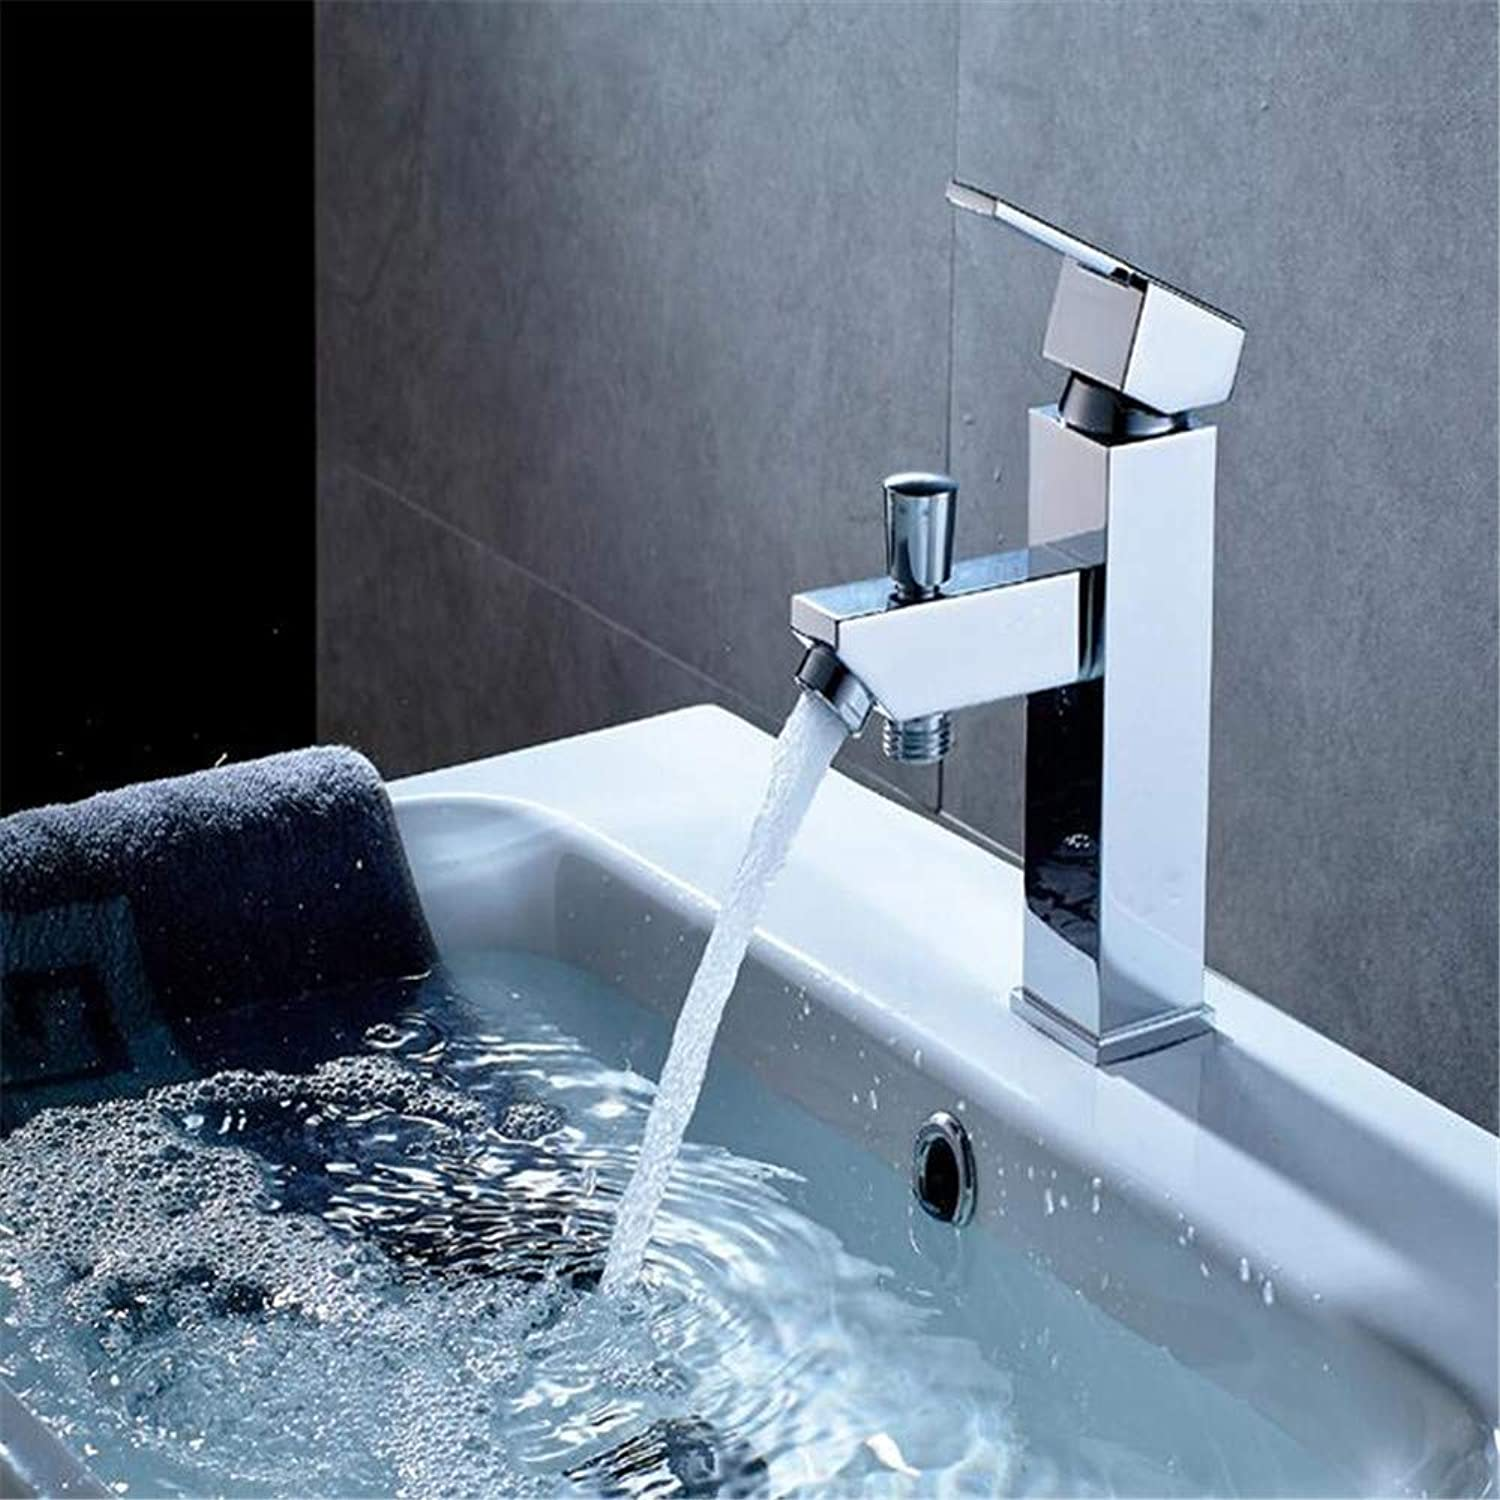 Faucetbasin Mixer Tap Single Single Hole Basin Faucet with Water Distributor Function Faucet Mixing Water Faucet.